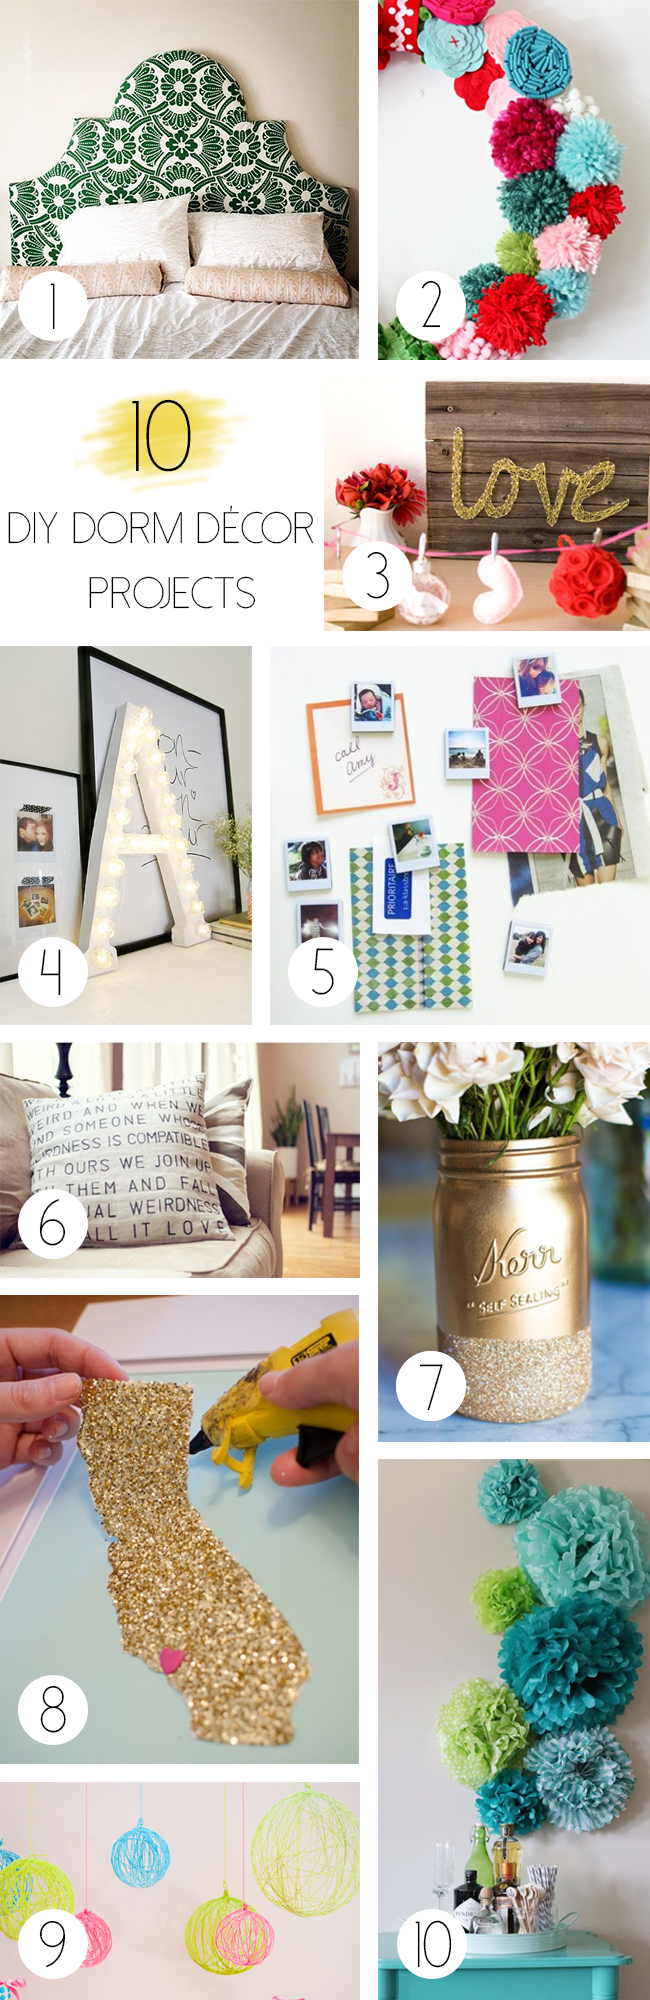 Dorm Décor DIY Projects  The Bella Insider ~ 215421_Dorm Room Diy Ideas